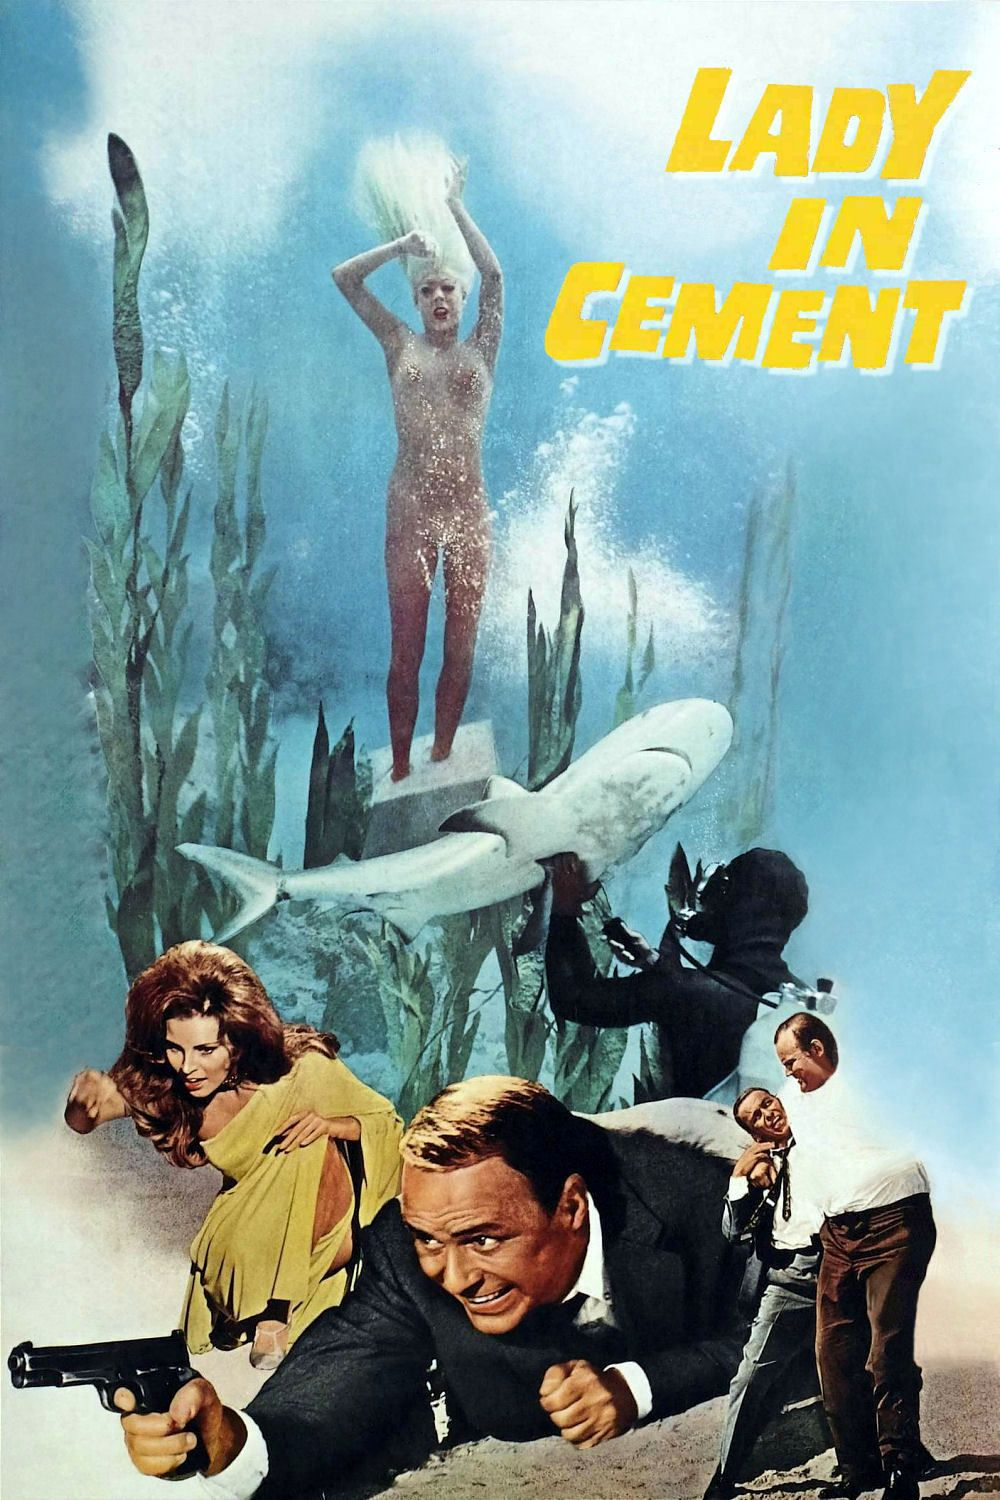 Lady in Cement (1968) | Full movies online, Full movies online free, Noir  detective